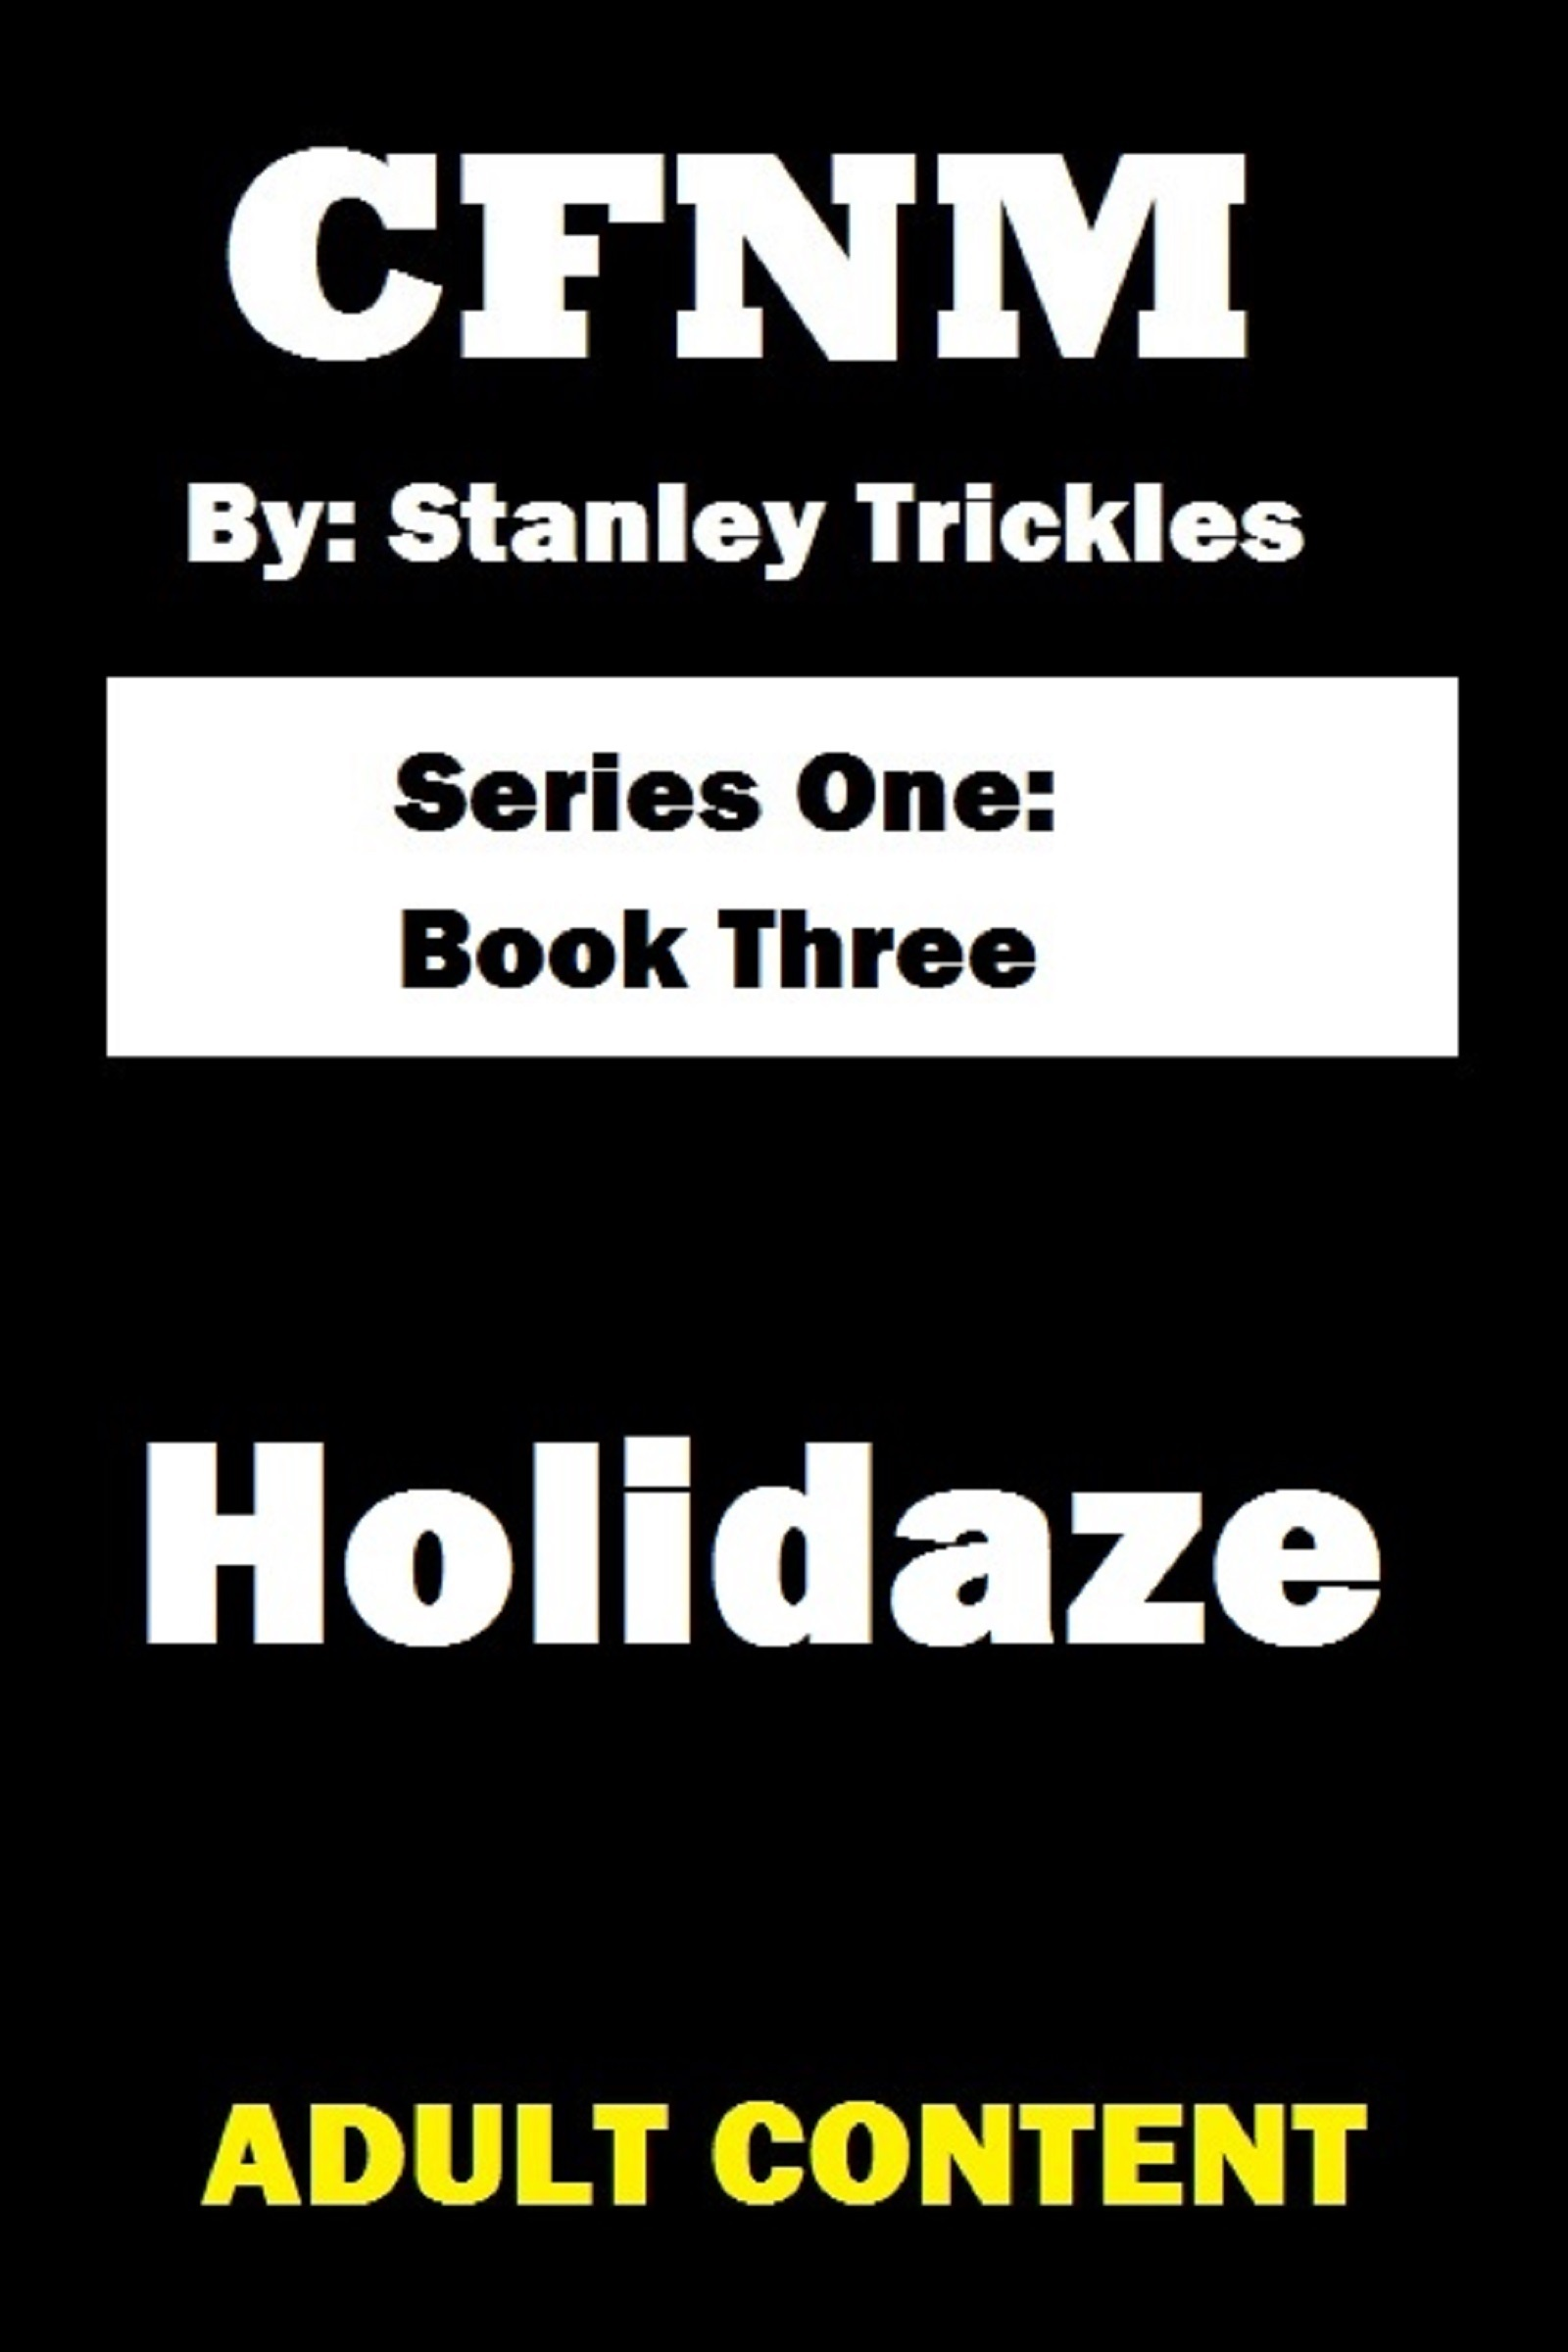 Holidaze  by  Stanley Trickles